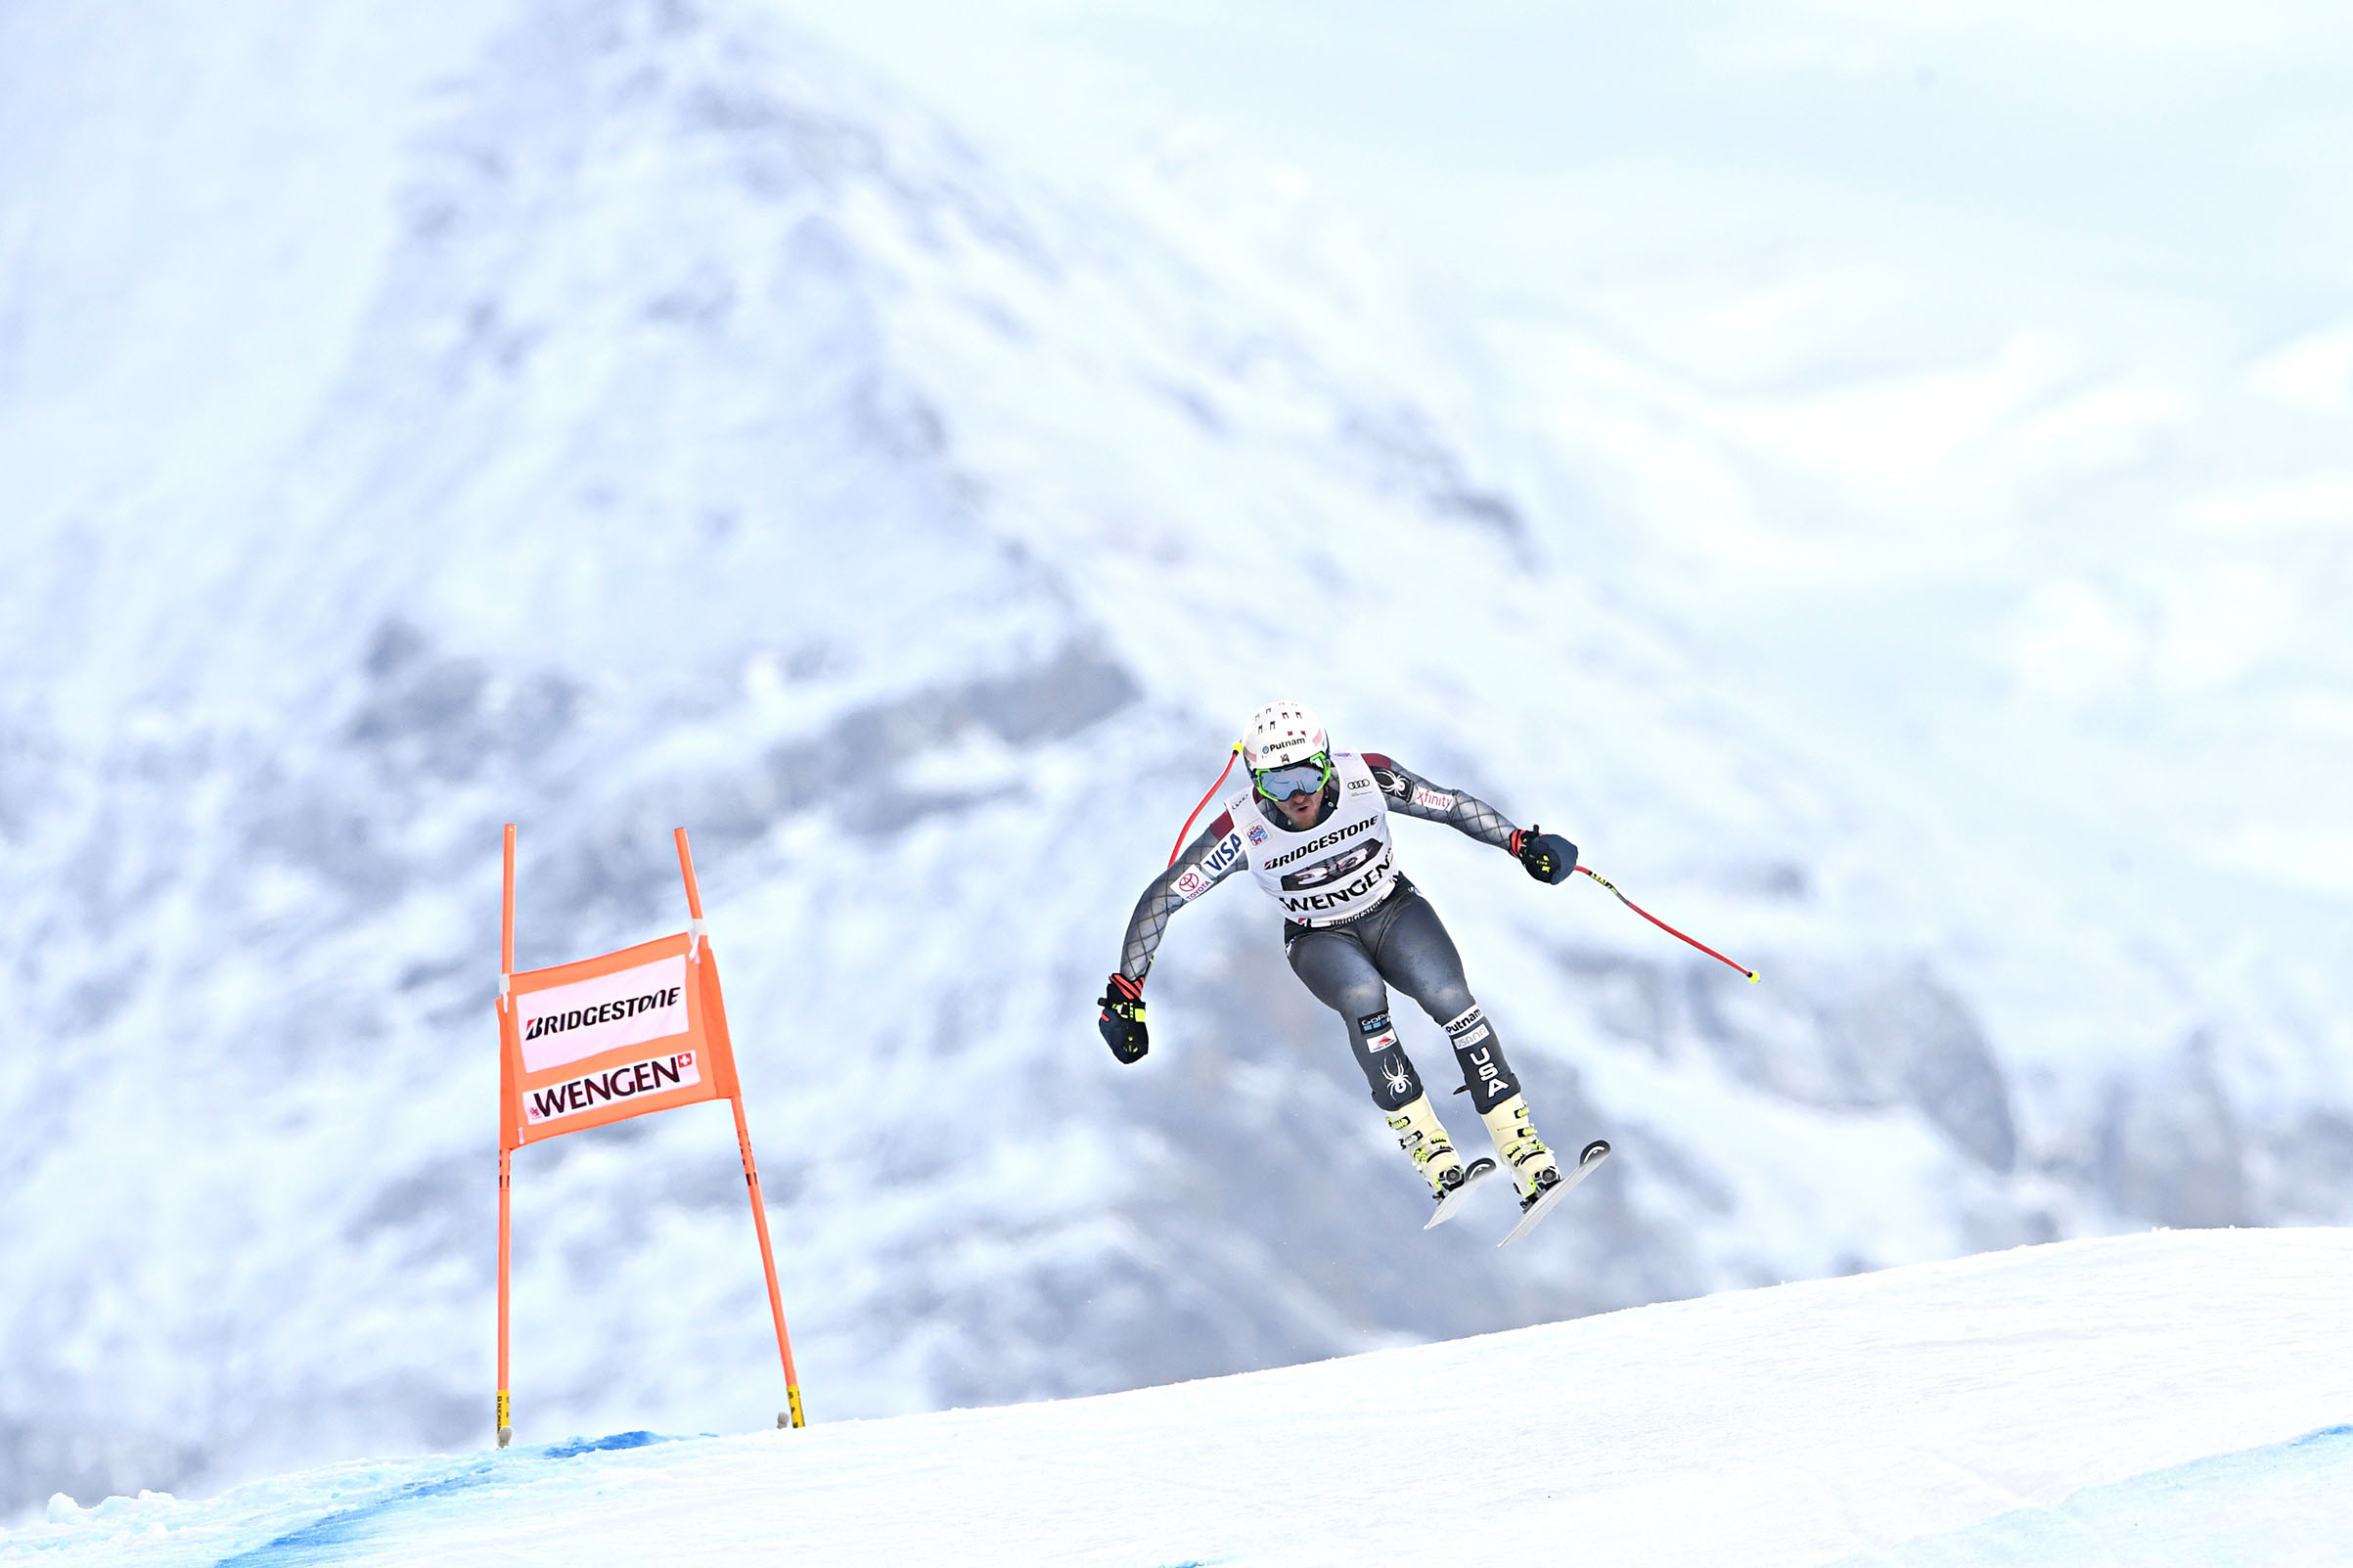 Ted Ligety of USA in action during the Audi FIS Alpine Ski World Cup Men's Combined in Wengen, Switzerland, on Jan. 12, 2018.